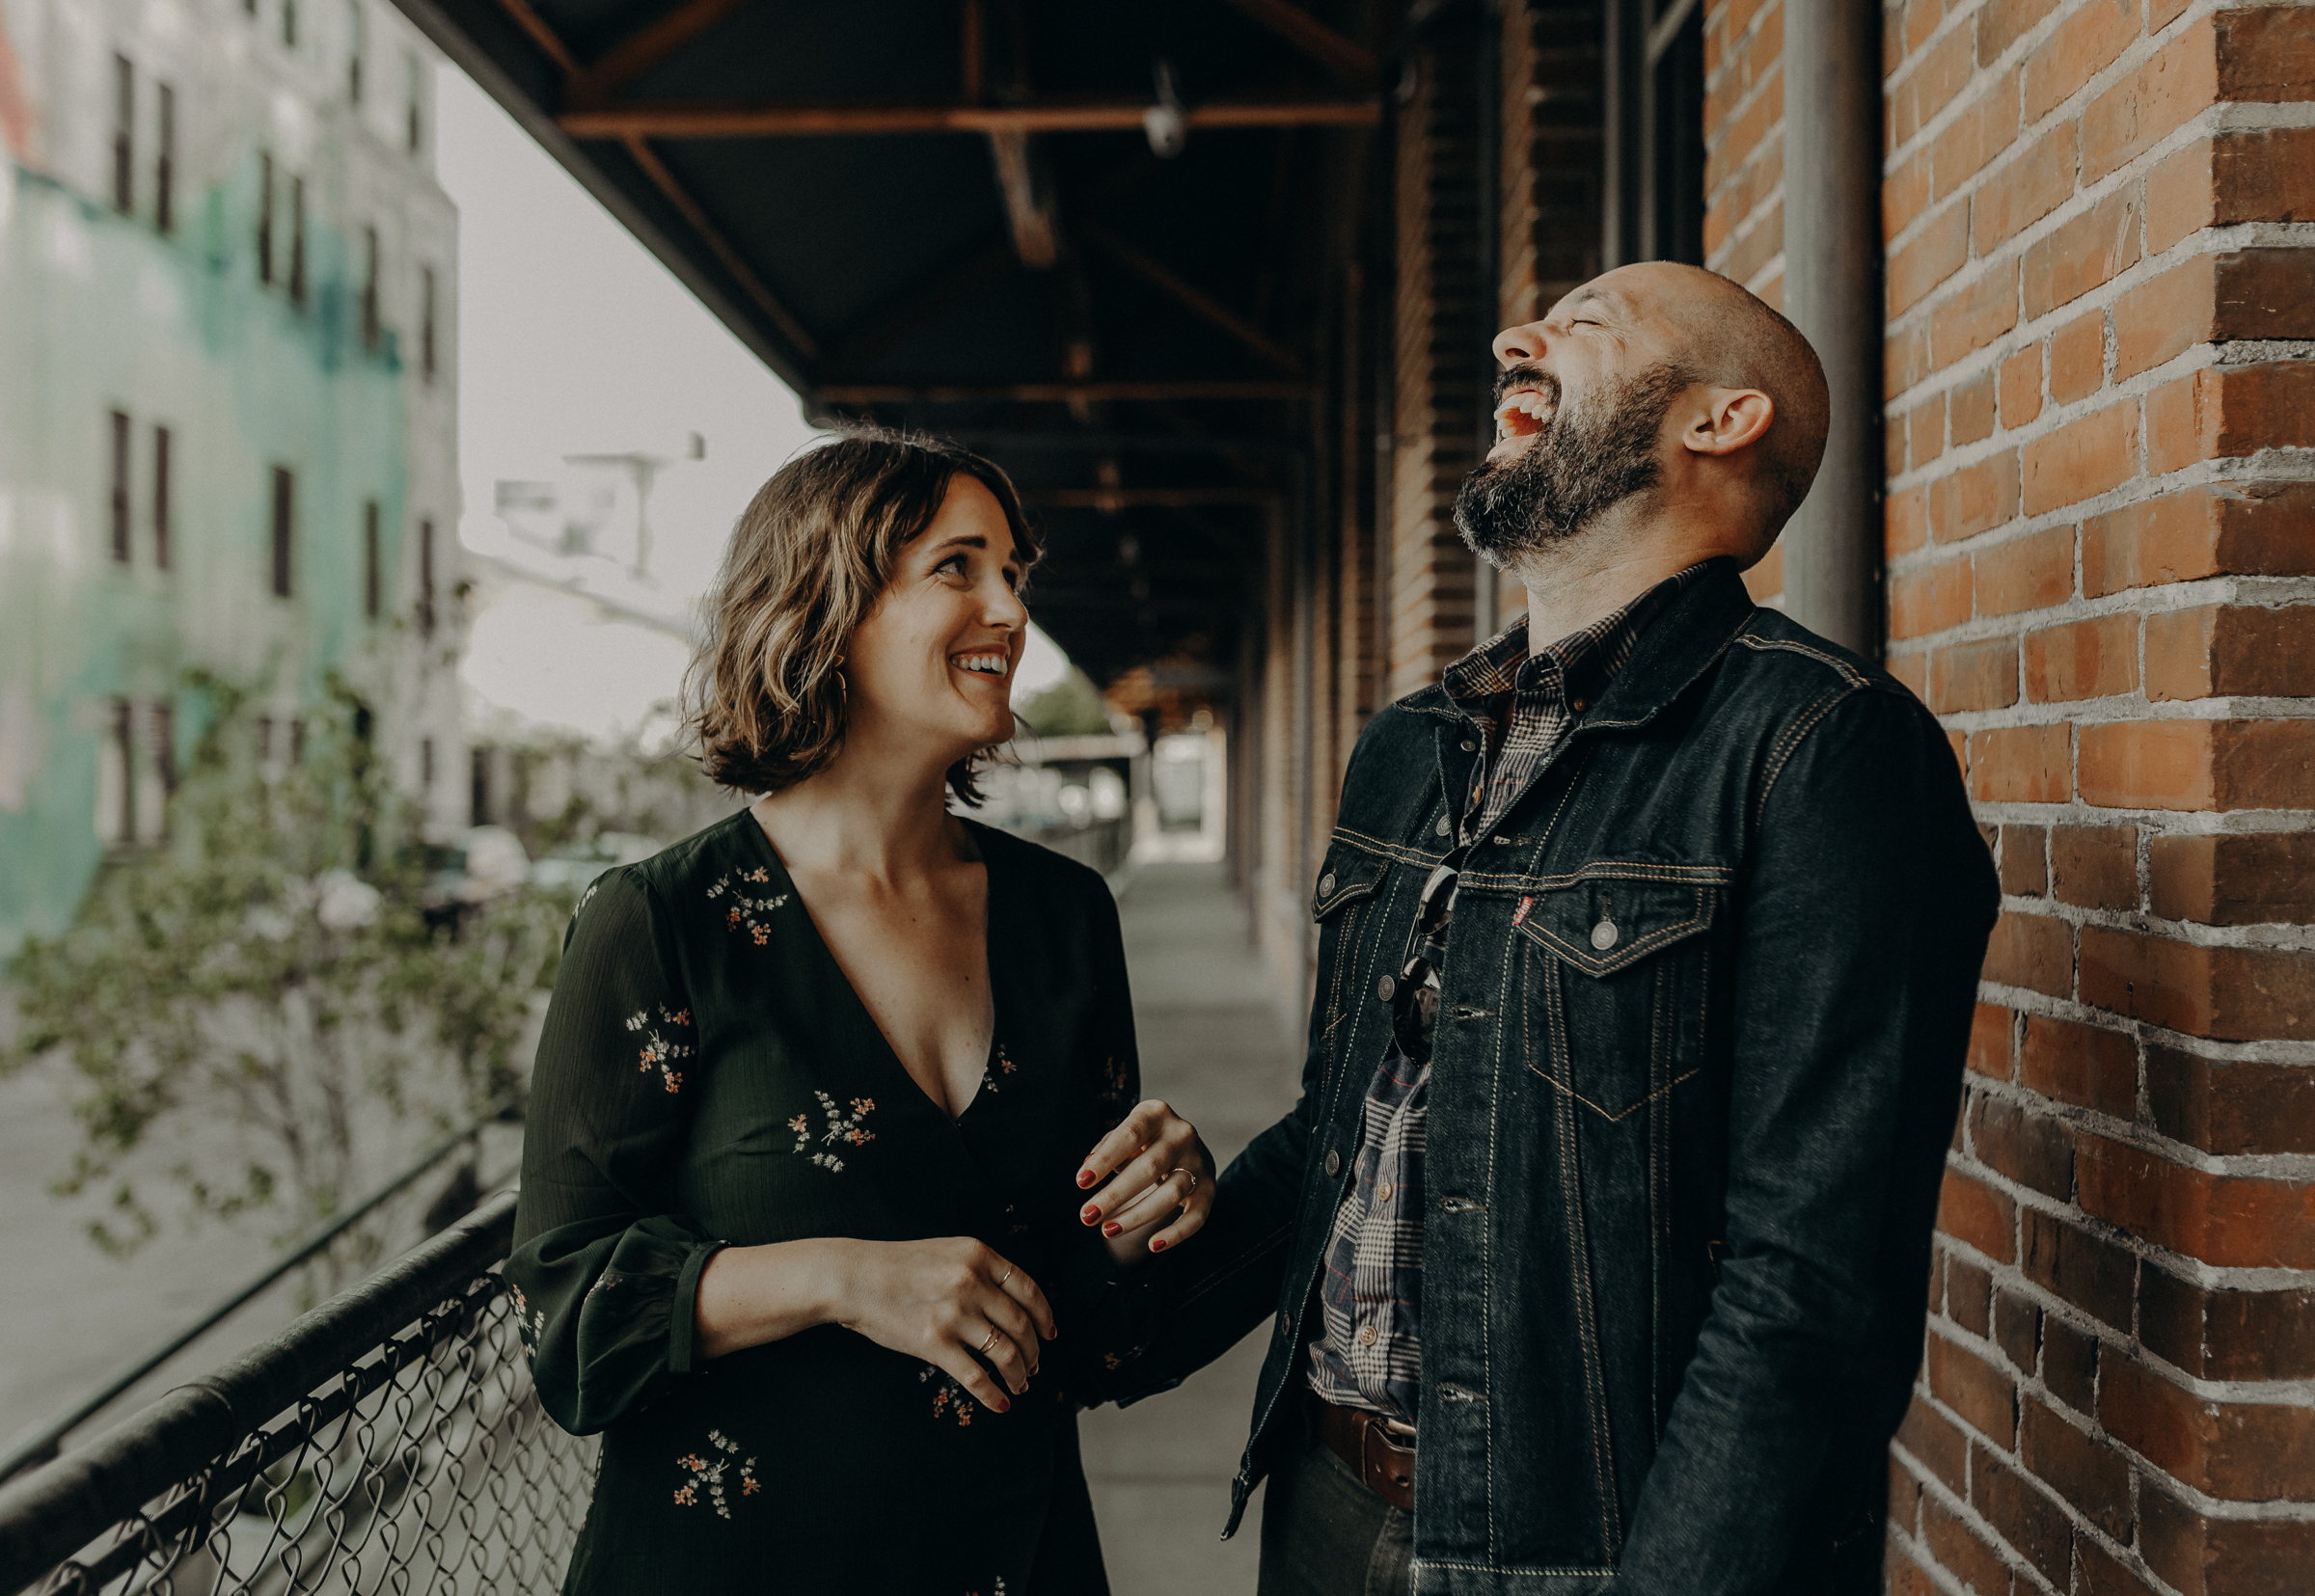 Isaiah + Taylor Photography - Downtown Los Angeles Arts District Engagement02.jpg